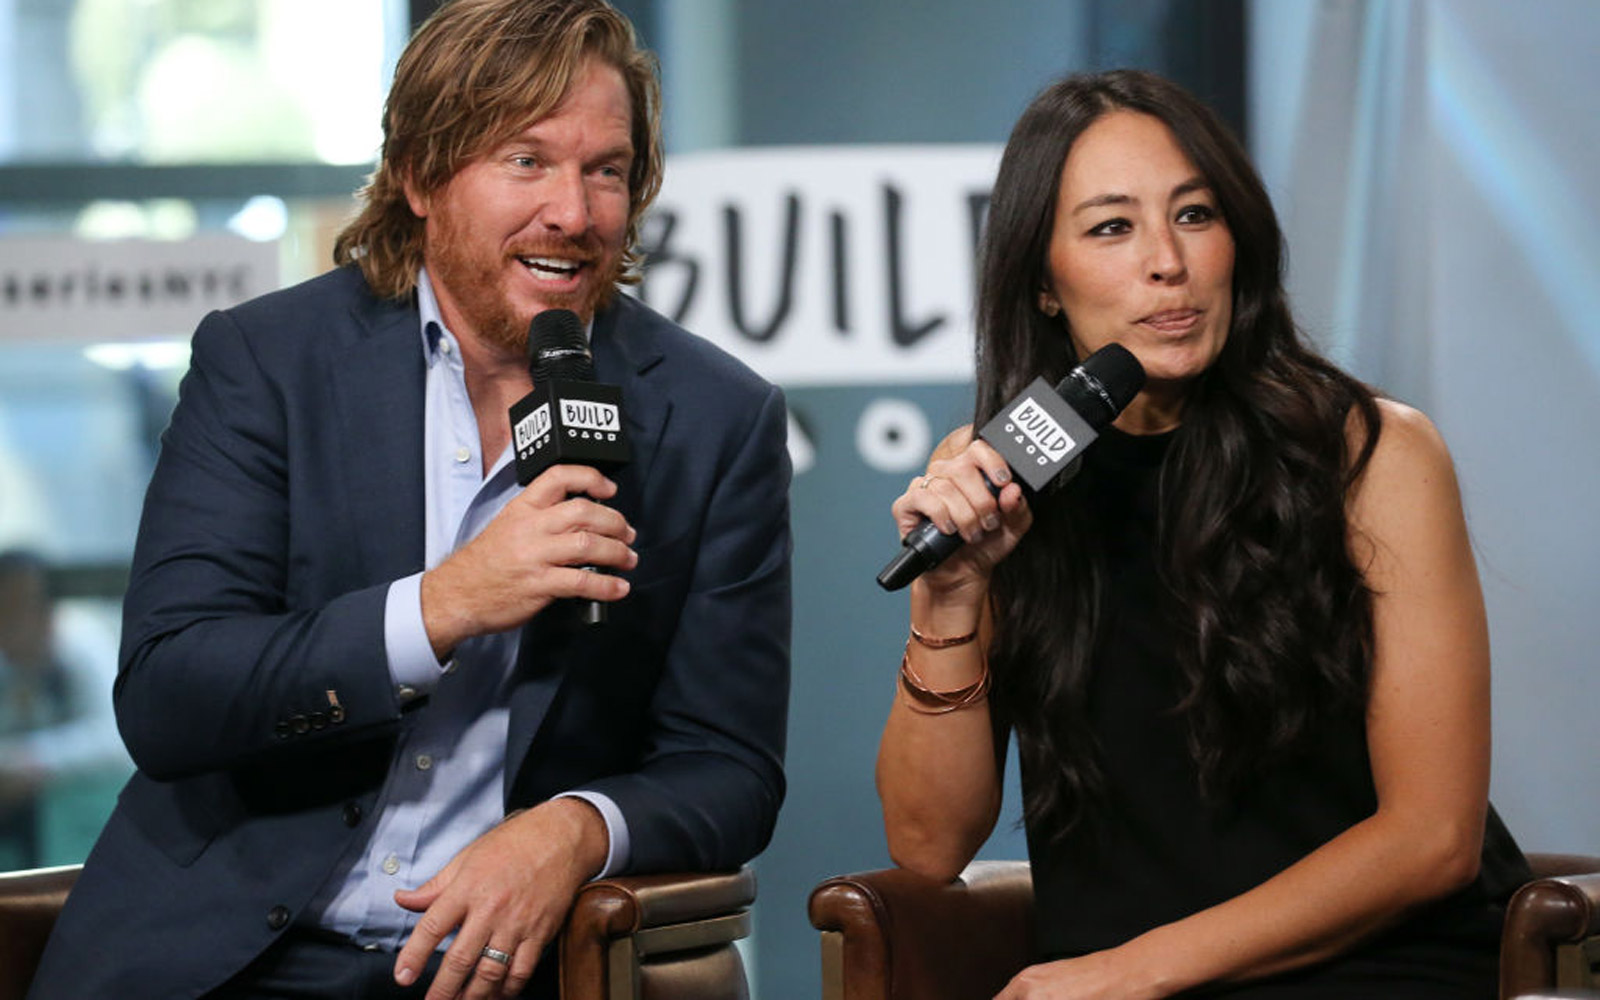 Chip and Joanna Gaines Share the Latest Details on Their Soon-to-open Restaurant